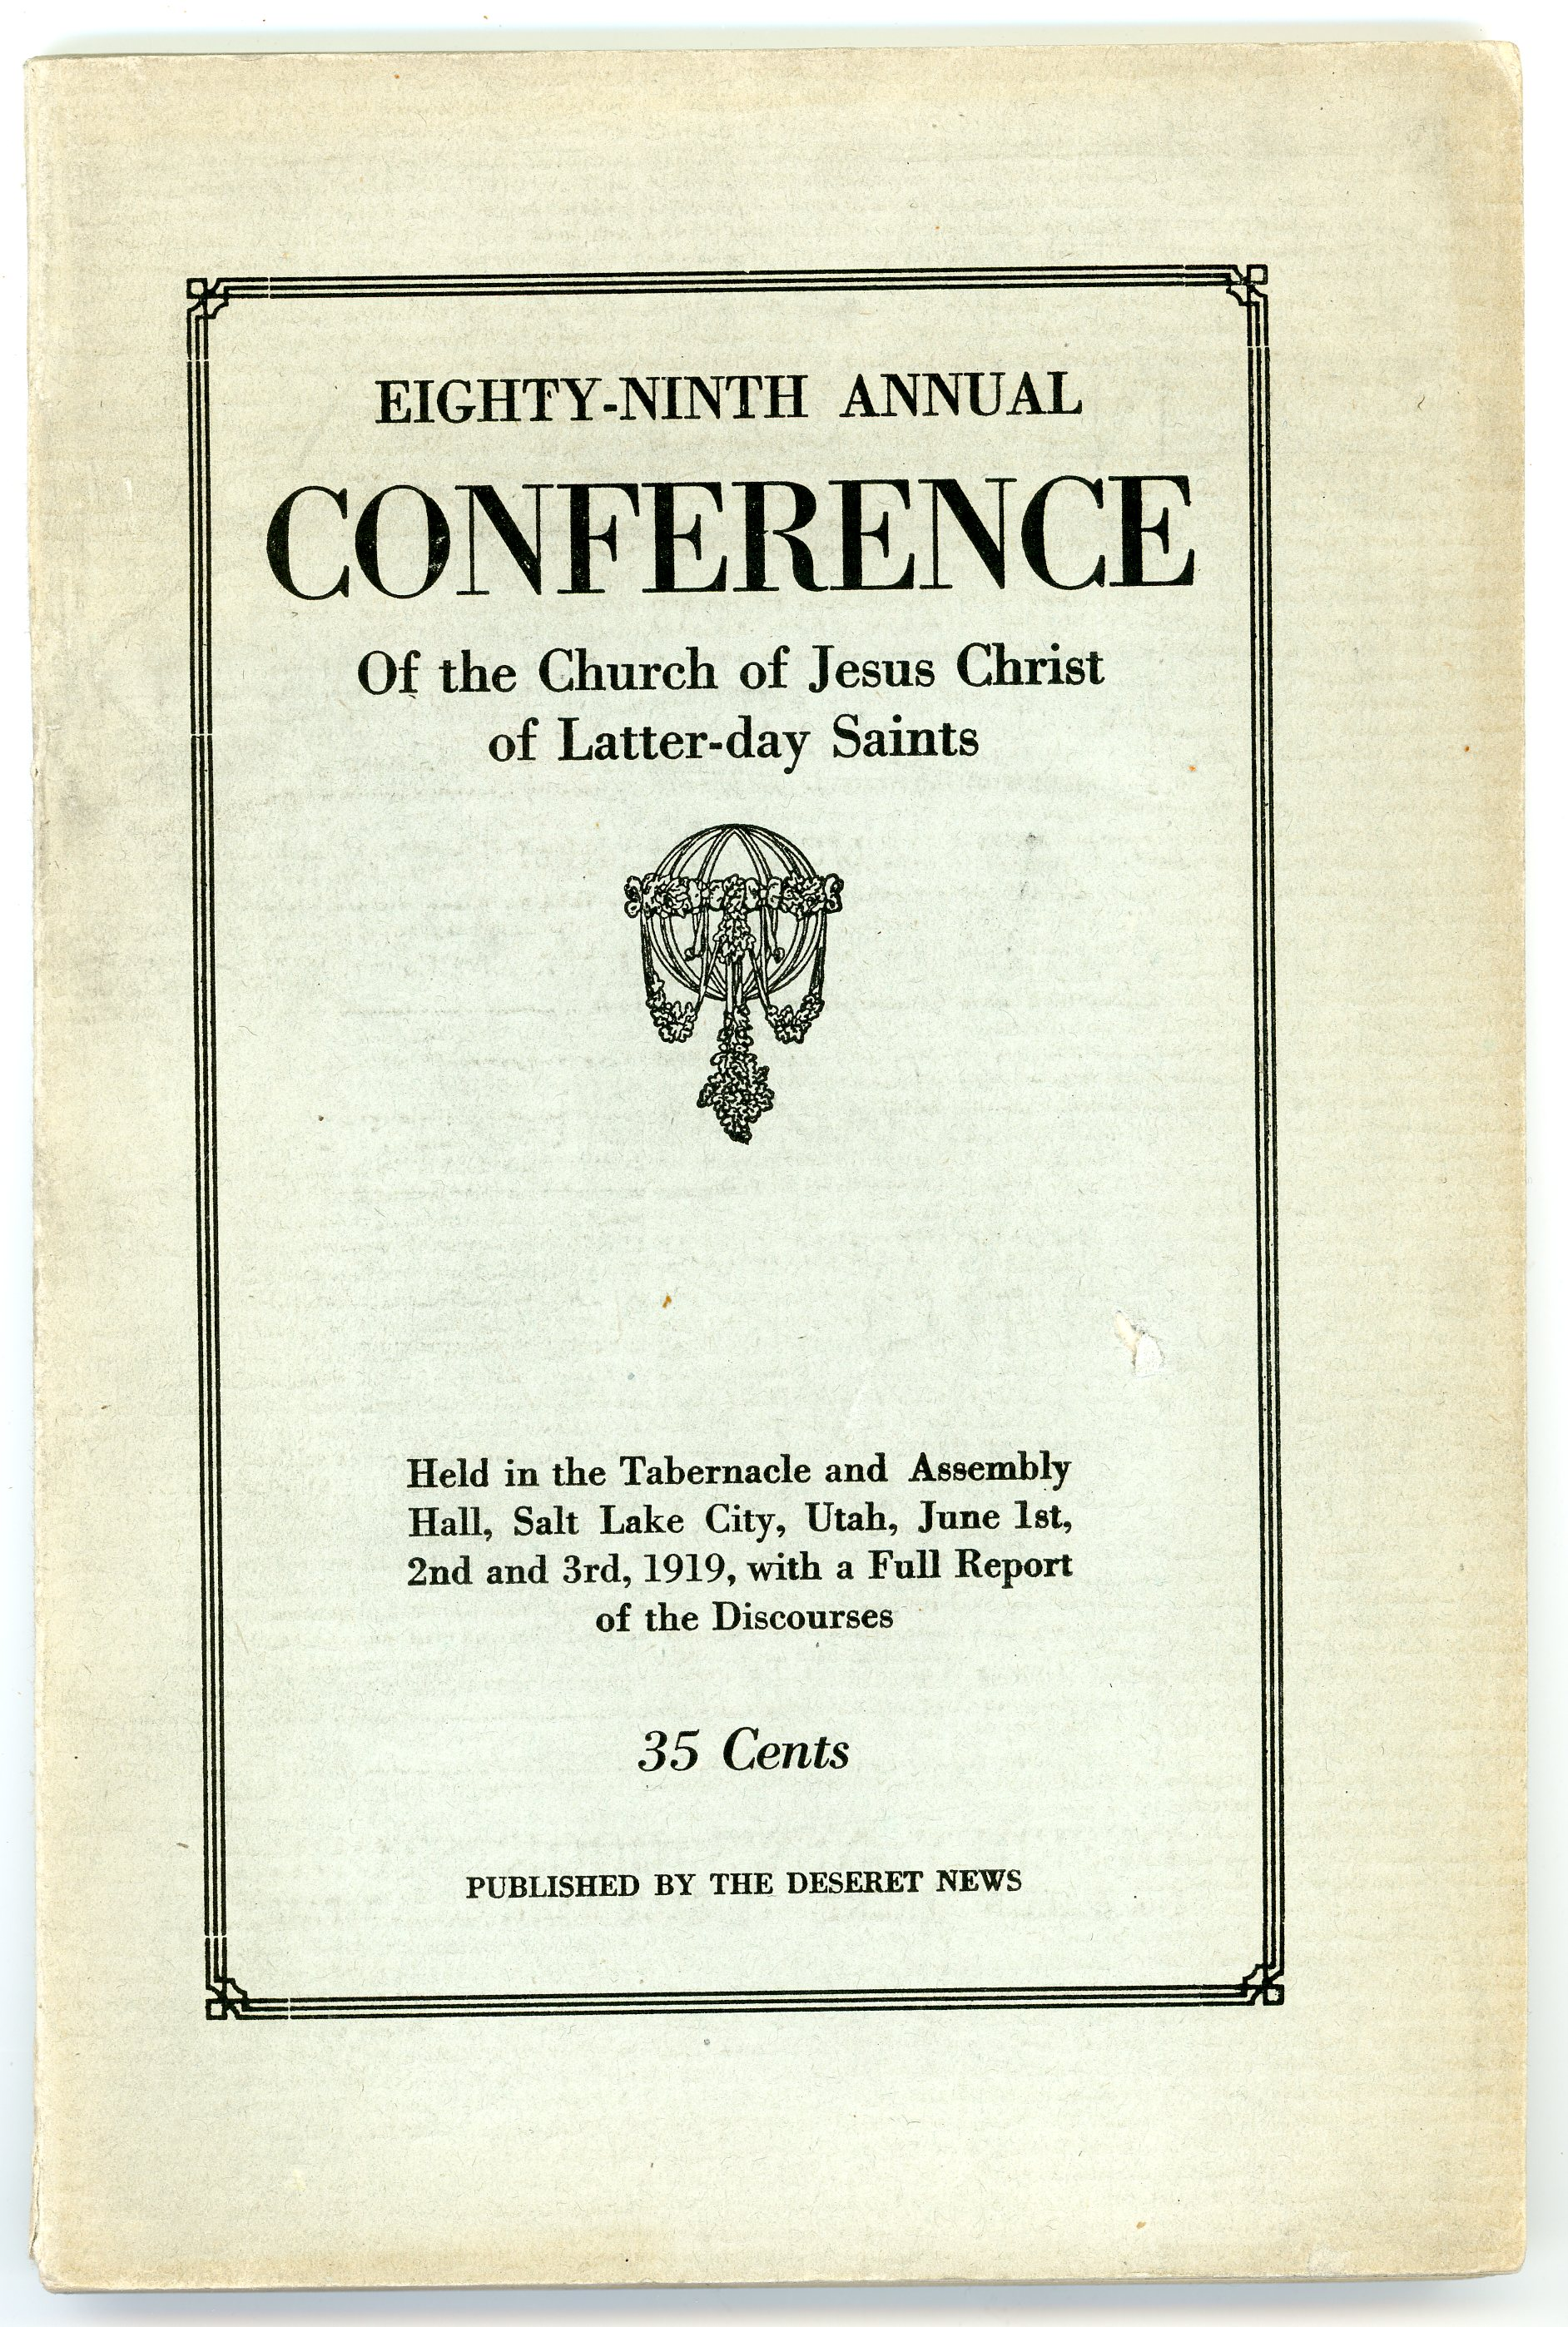 The cover of the 1919 general conference report.